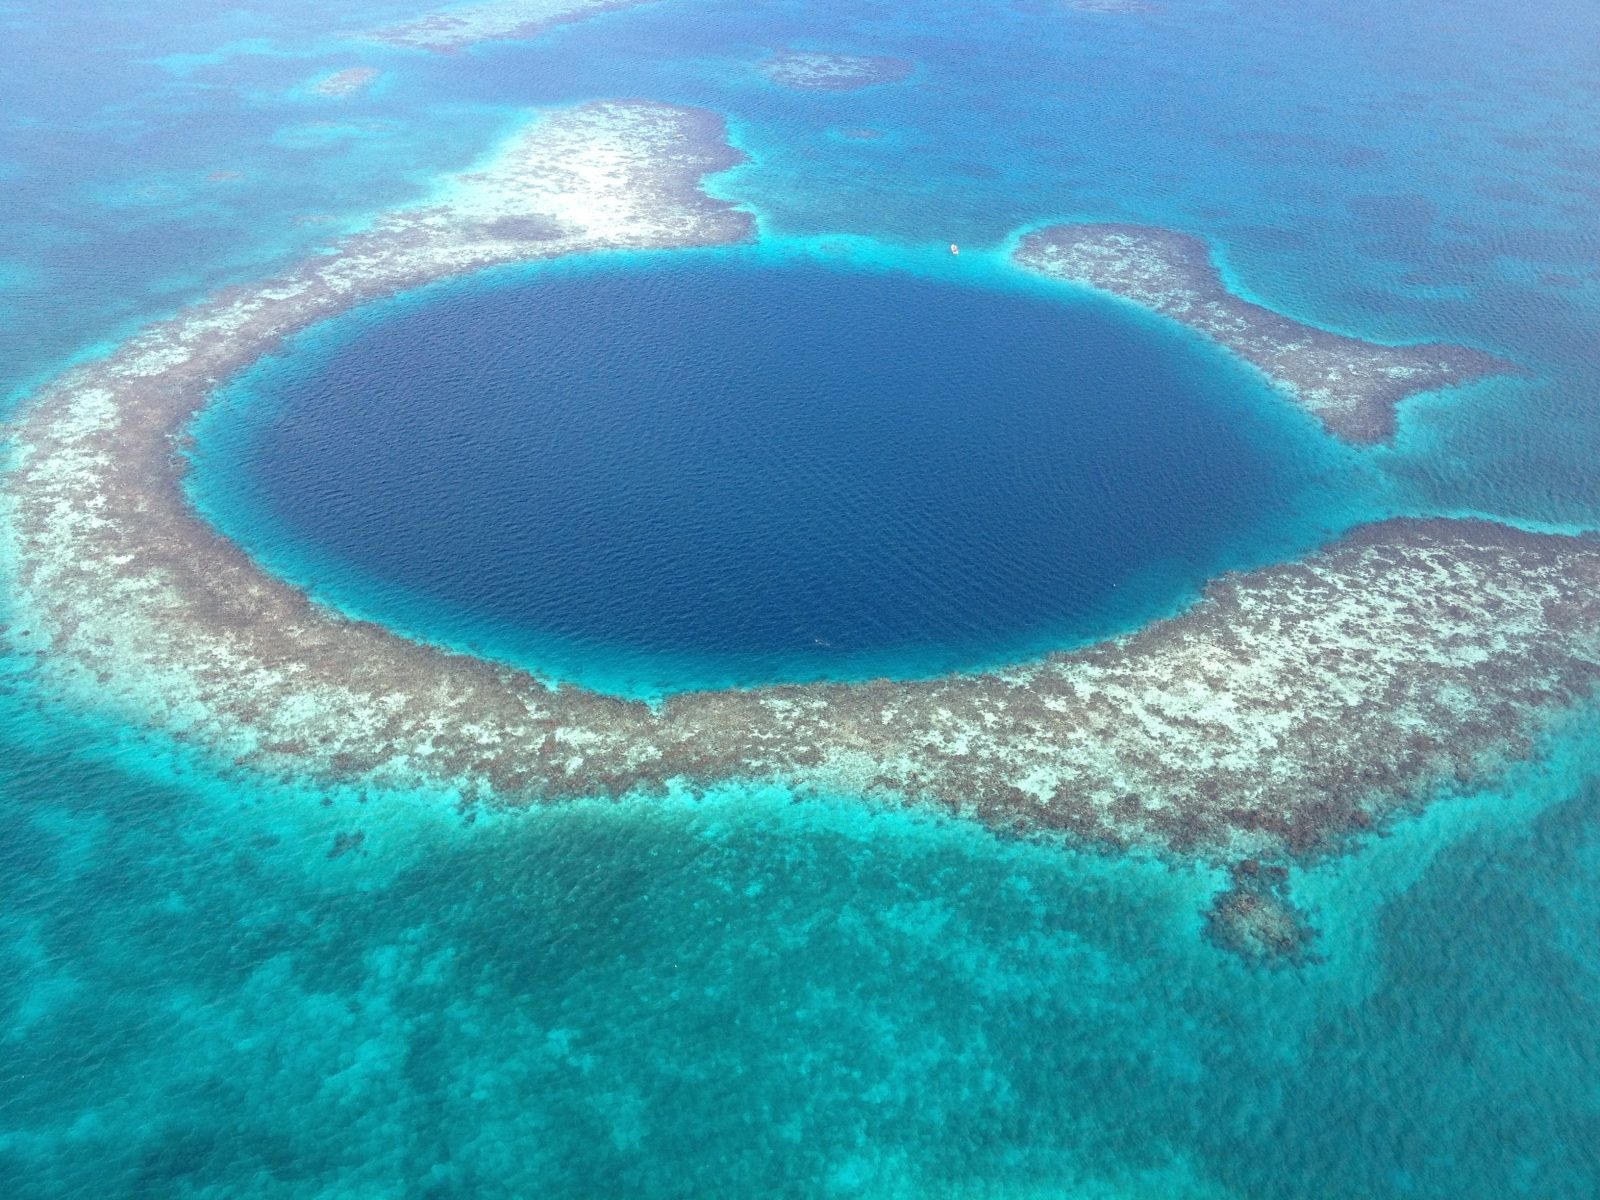 The Blue Hole, Belize